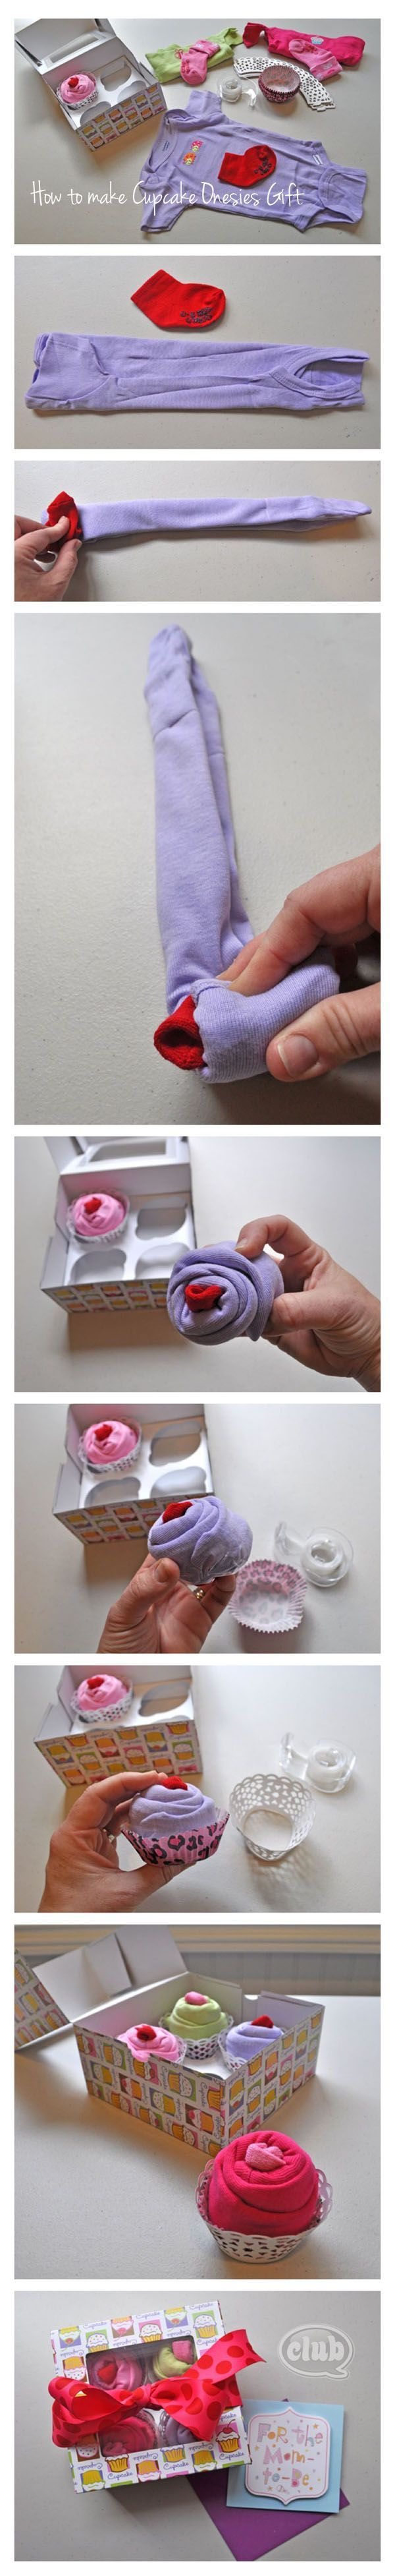 Cupcake onesies baby gift - perfect homemade gift idea. Love the instructions!